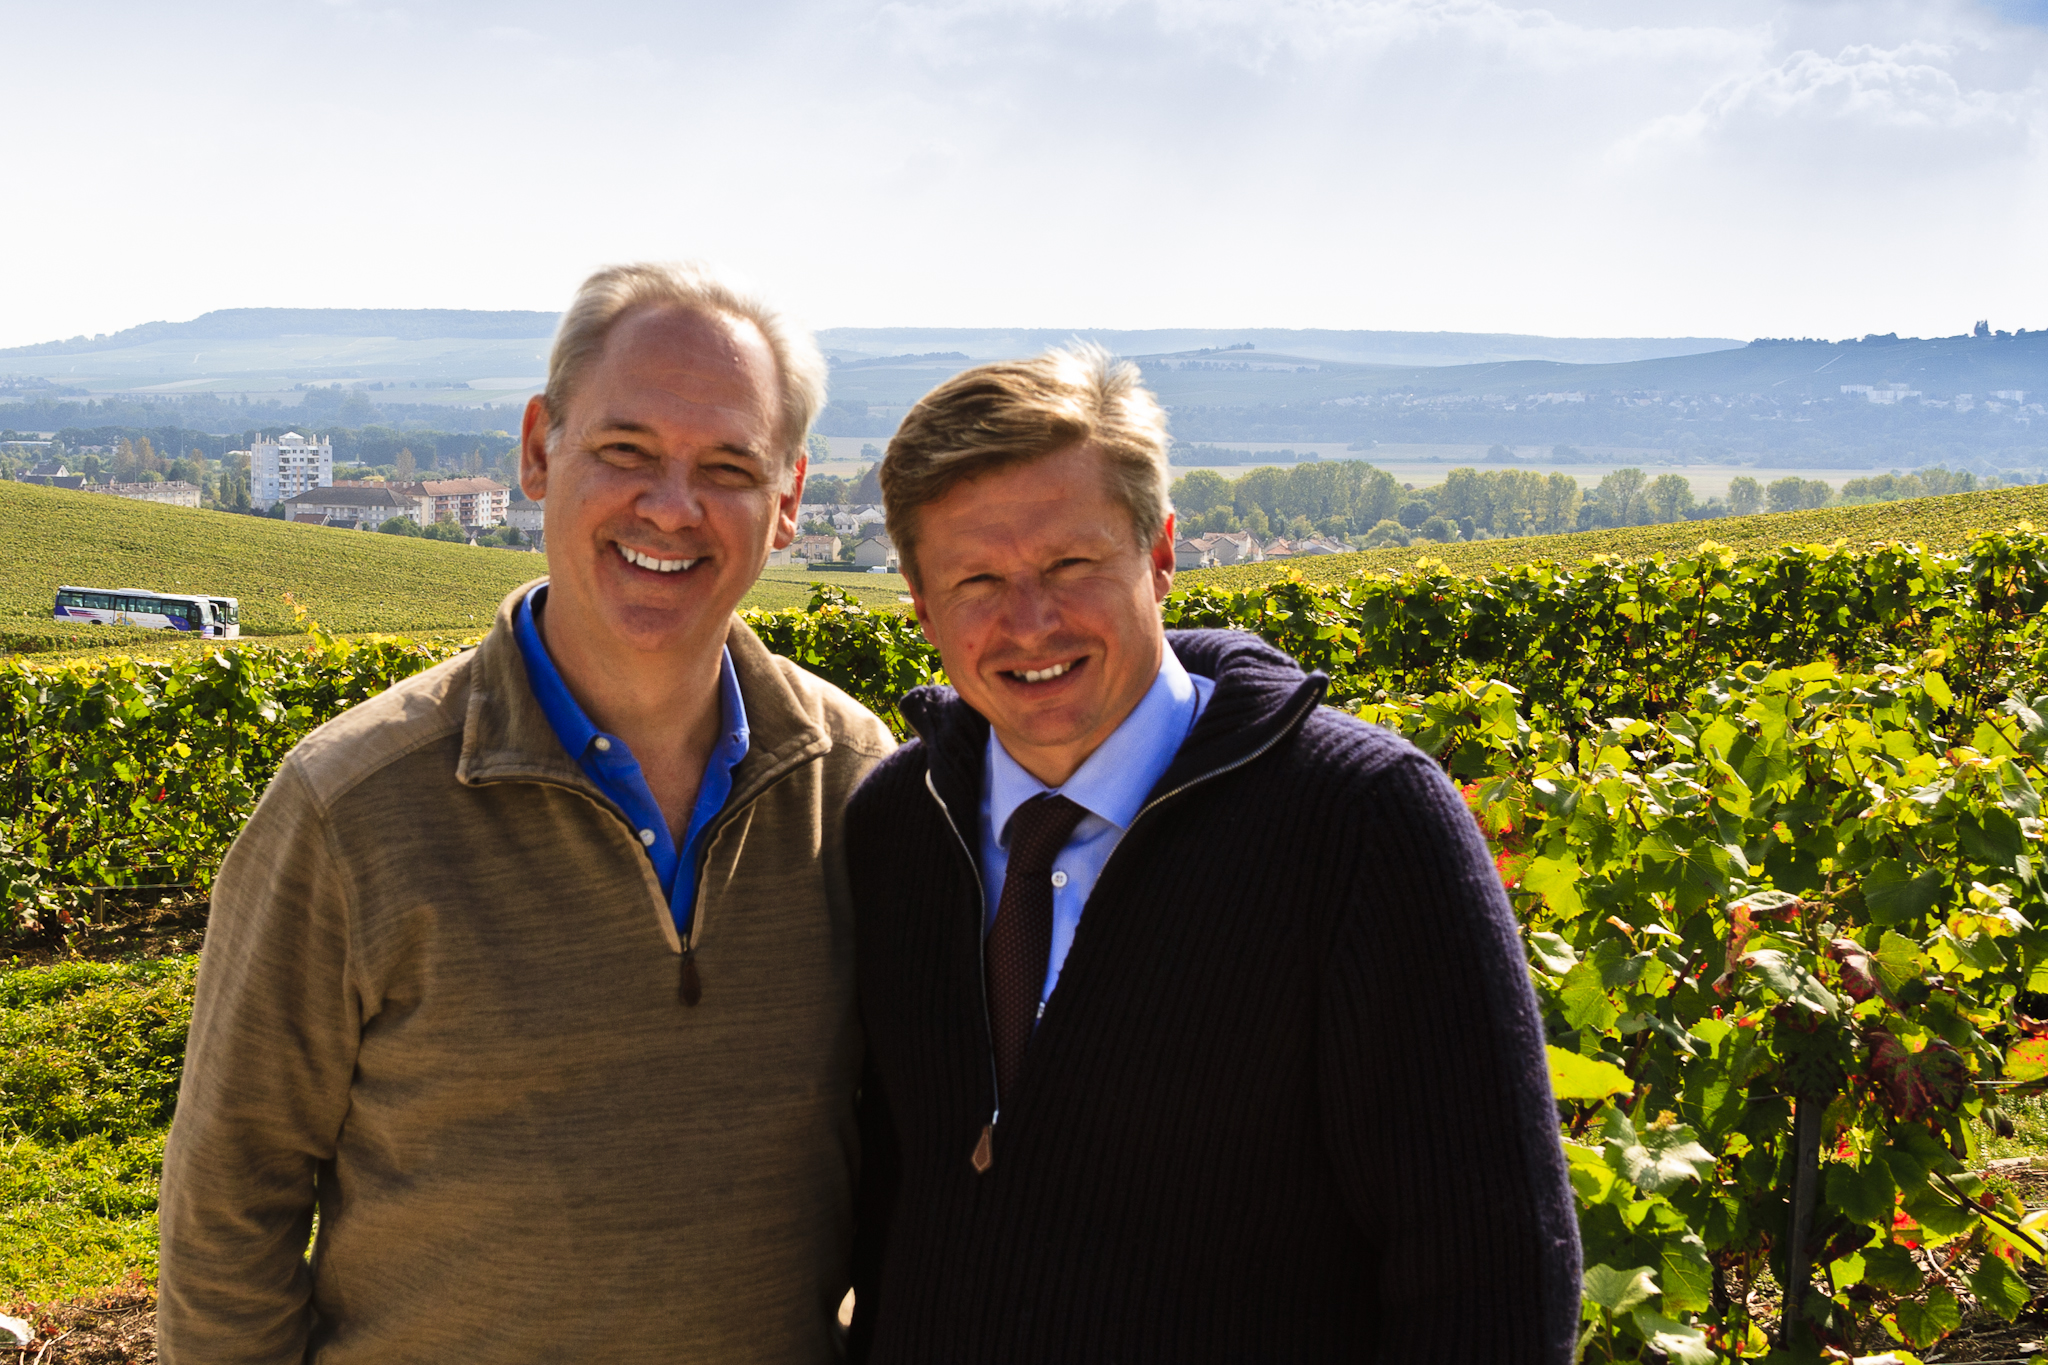 In the vineyards of Aÿ with my friend Jean-Baptiste Lécaillon of Champagne Louis Roederer